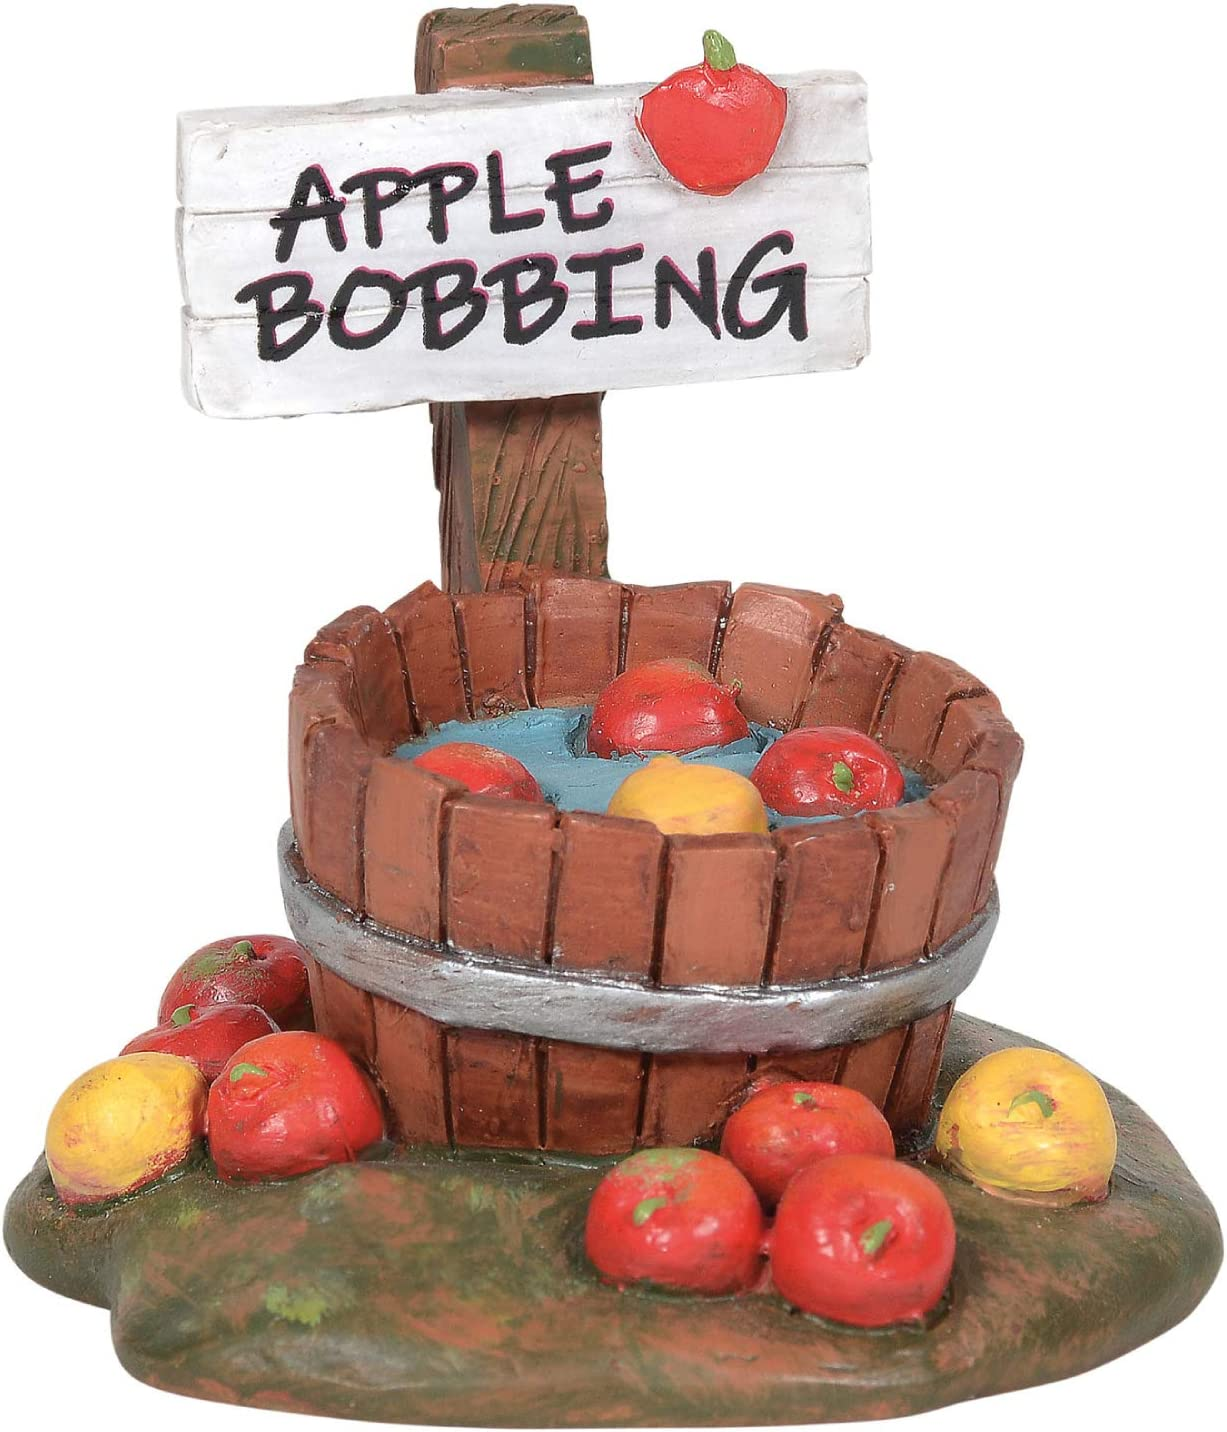 Department 56 Village Collection Accessories Halloween Bobbing for Apples Figurine, 2.13 Inch, Multicolor